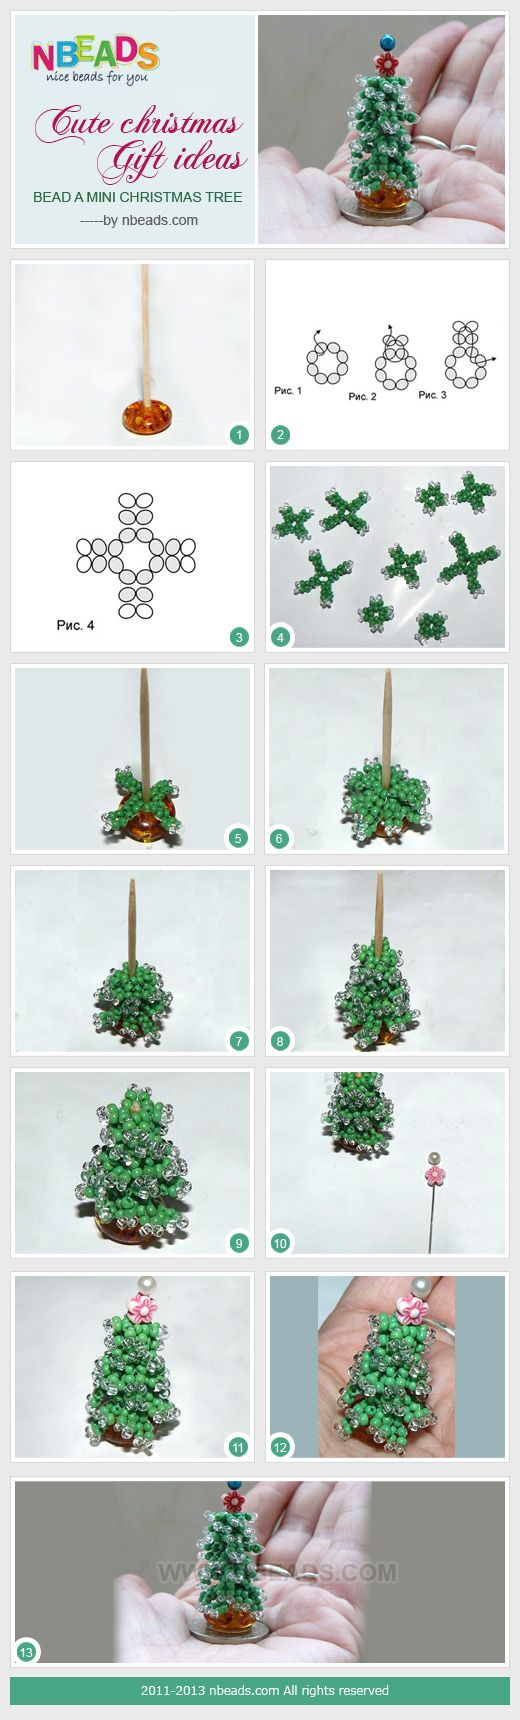 cute christmas gift ideas - bead a mini christmas tree